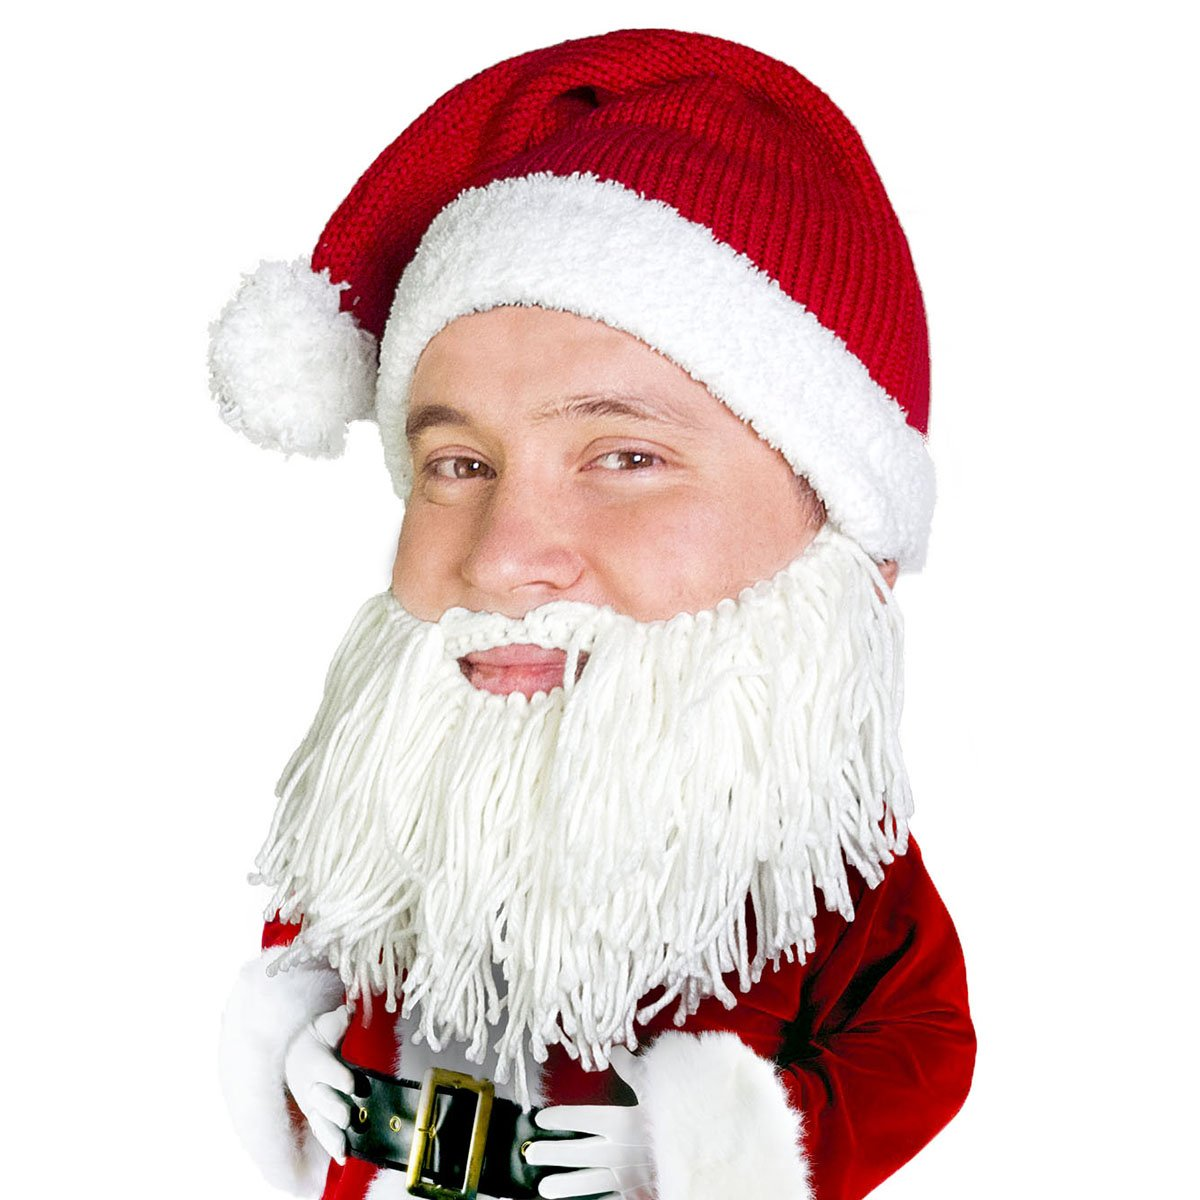 2d2fd4a3ad5 Amazon.com  Beard Head Knitted Santa Beard Hat with Funny Beard Facemask   Clothing